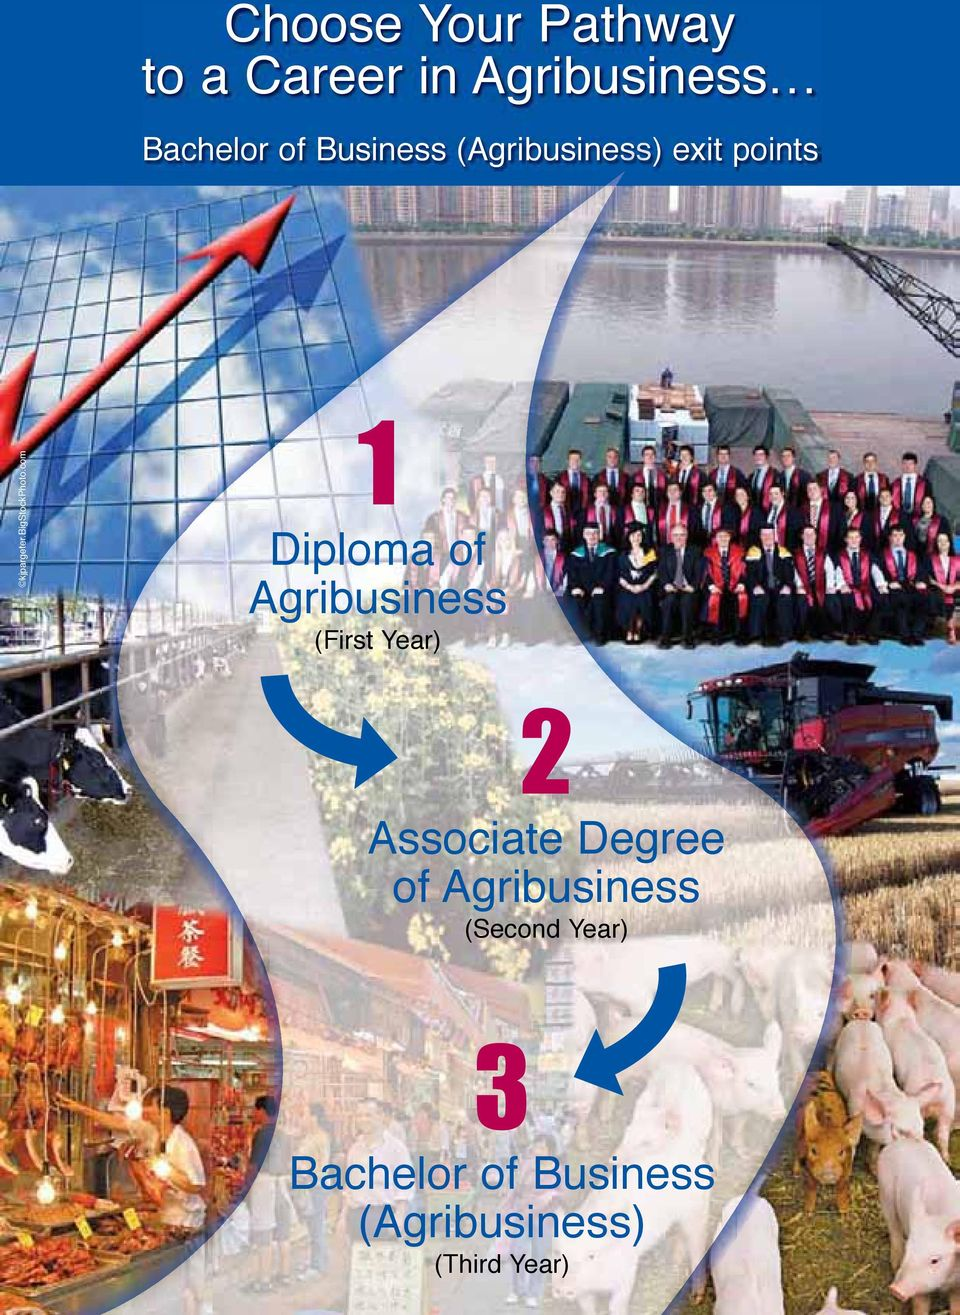 com 1 Diploma of Agribusiness (First Year) 2 Associate Degree of